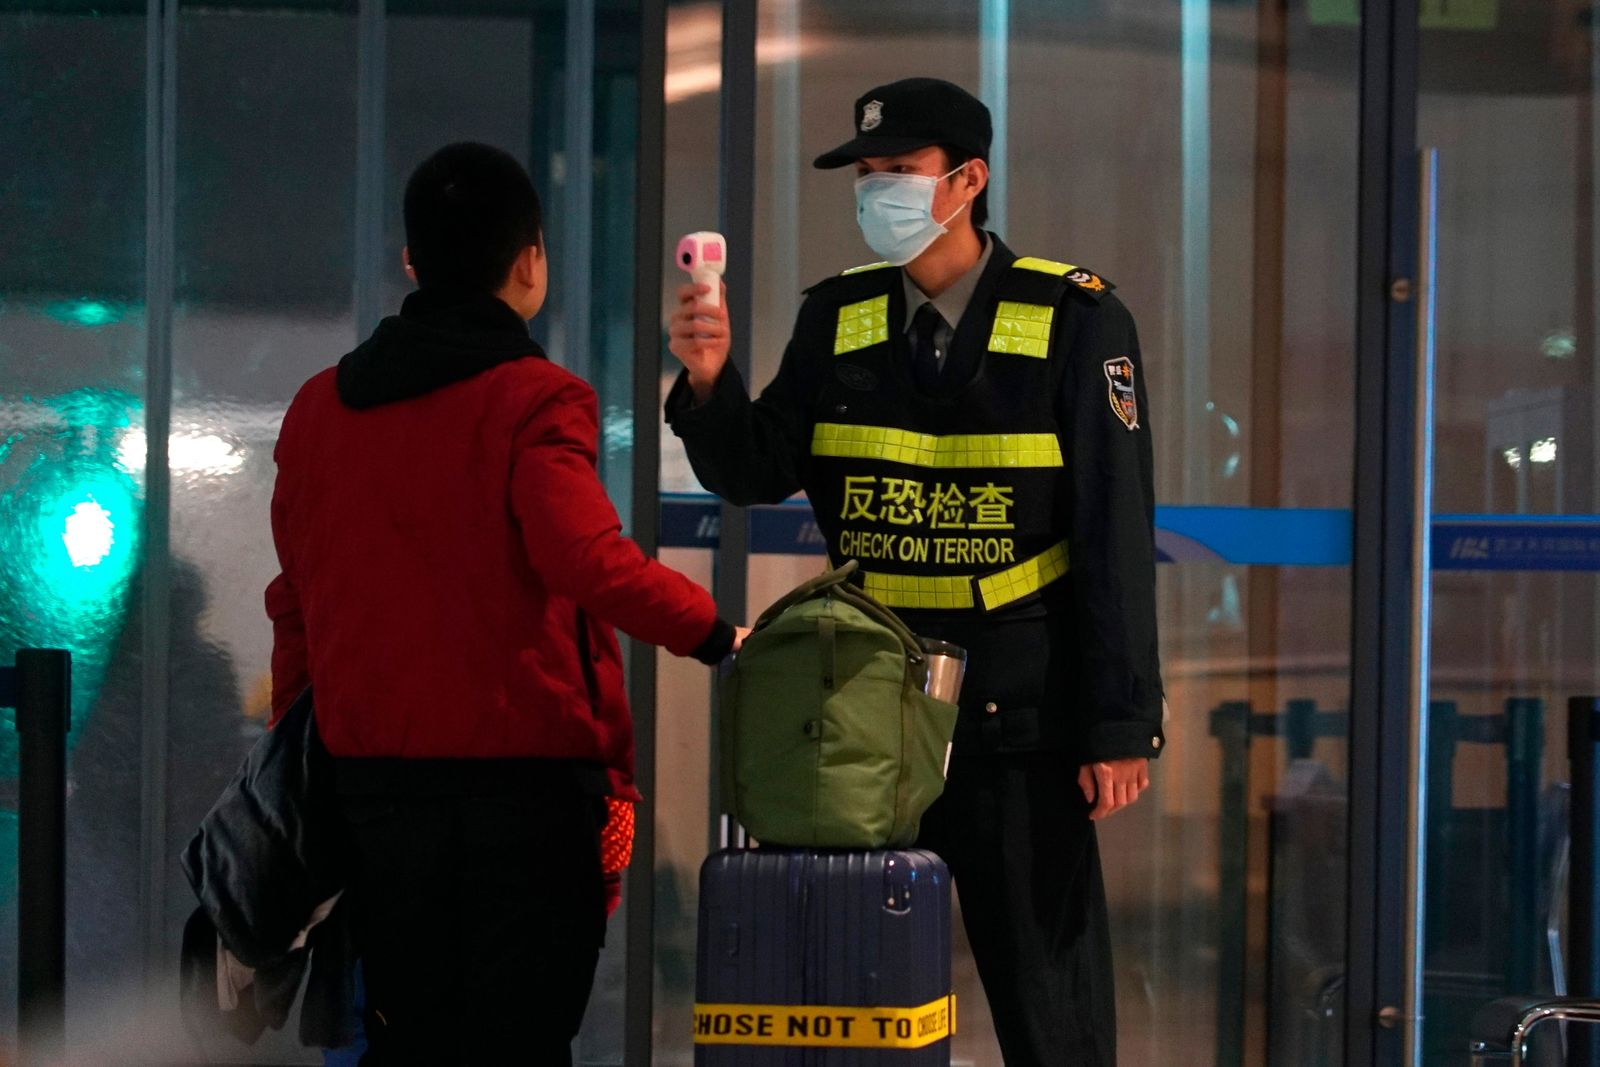 An airport staff member uses a temperature gun to check people leaving Wuhan Tianhe International Airport in Wuhan, China, Tuesday, Jan. 21, 2020. Heightened precautions were being taken in China and elsewhere Tuesday as governments strove to control the outbreak of a novel coronavirus that threatens to grow during the Lunar New Year travel rush. (AP Photo/Dake Kang)